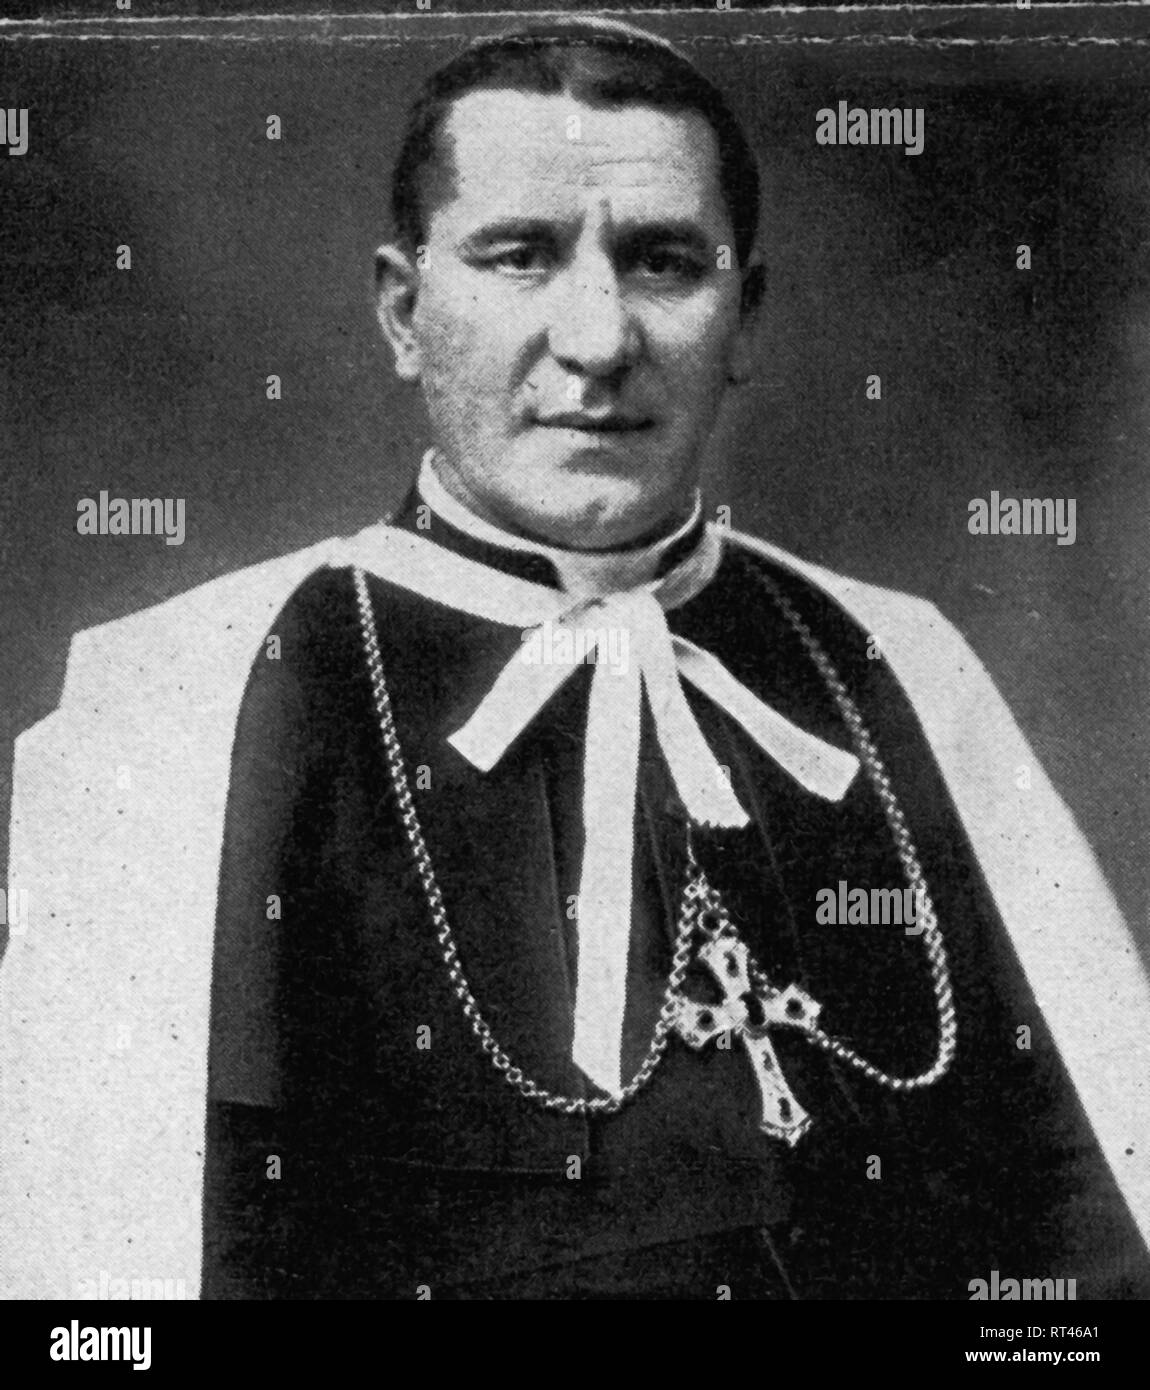 Piazza, Adeodato Giovanni, 30.9.1884 - 30.11.1957, Italian clergyman, archbishop, cardinal, portrait, circa 1937, Additional-Rights-Clearance-Info-Not-Available - Stock Image